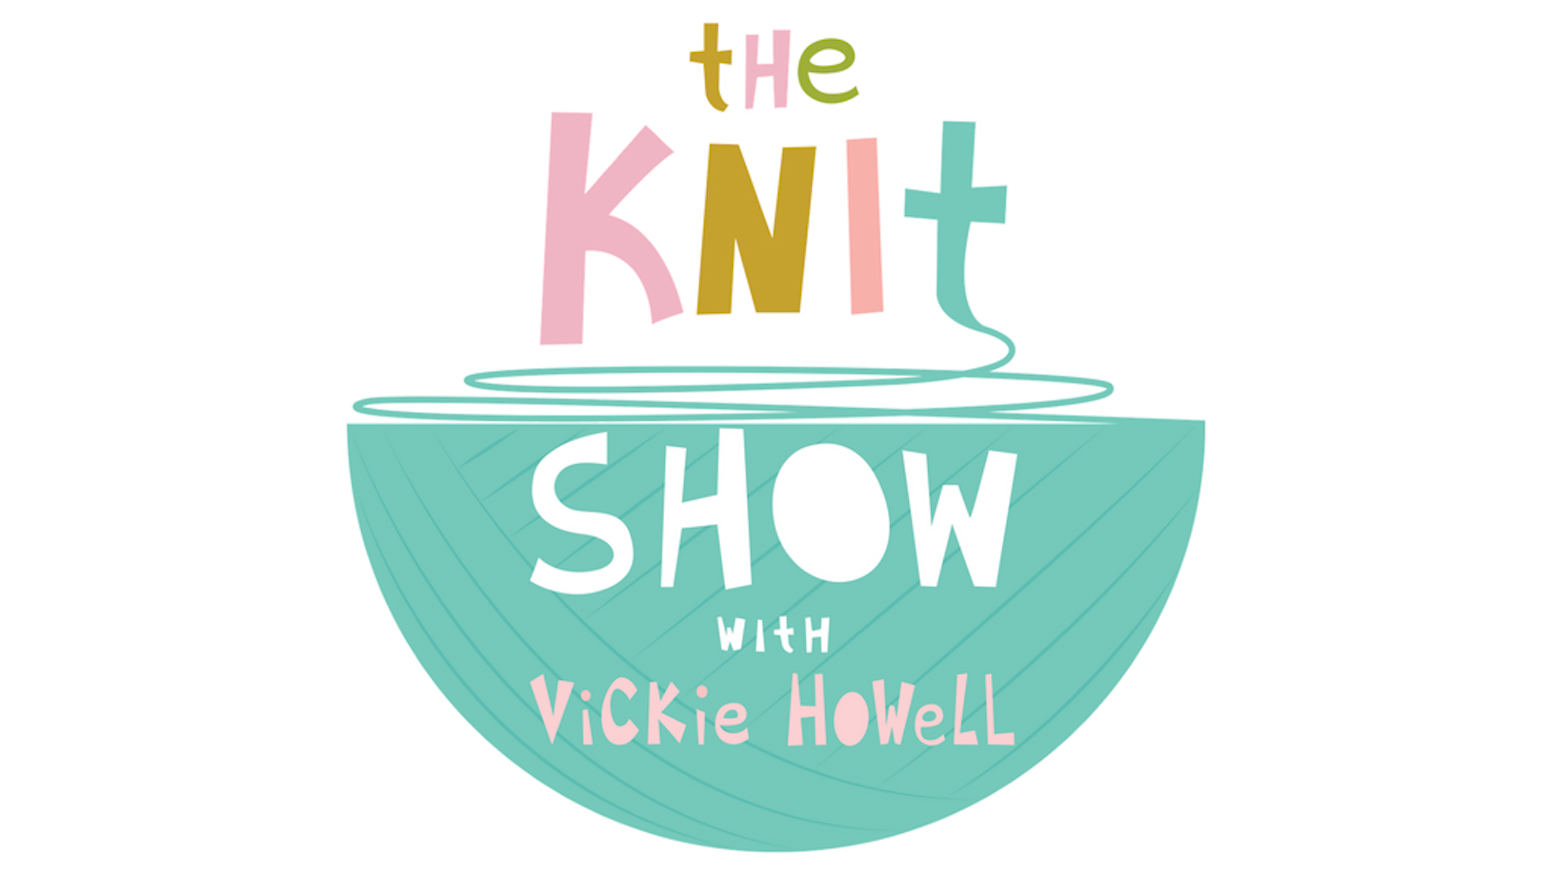 The Knit Show with Vickie Howell will be the 1st, community funded & internationally accessible episodic knitting & crochet series!